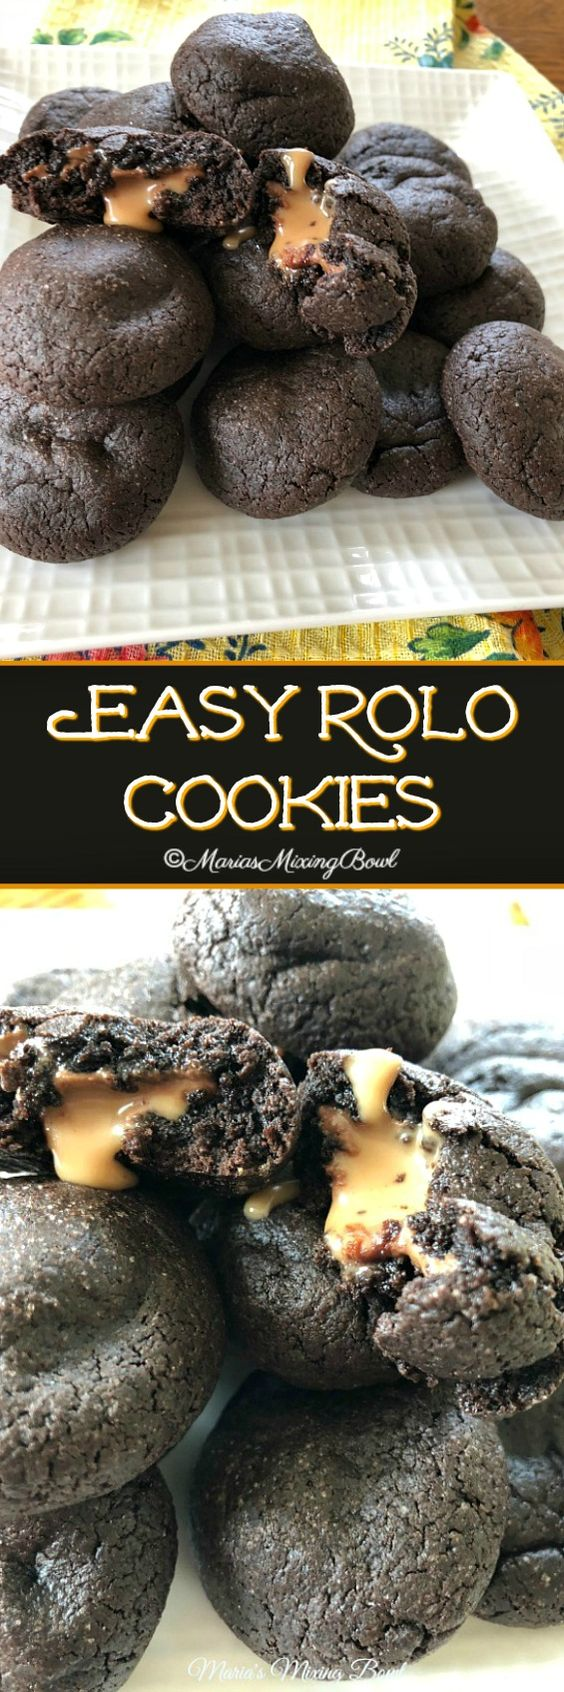 Easy Rolo Cookies are so easy to make! cake mix and Rolo candies make this a favorite cookie in our house! Sometimes we make a double batch!